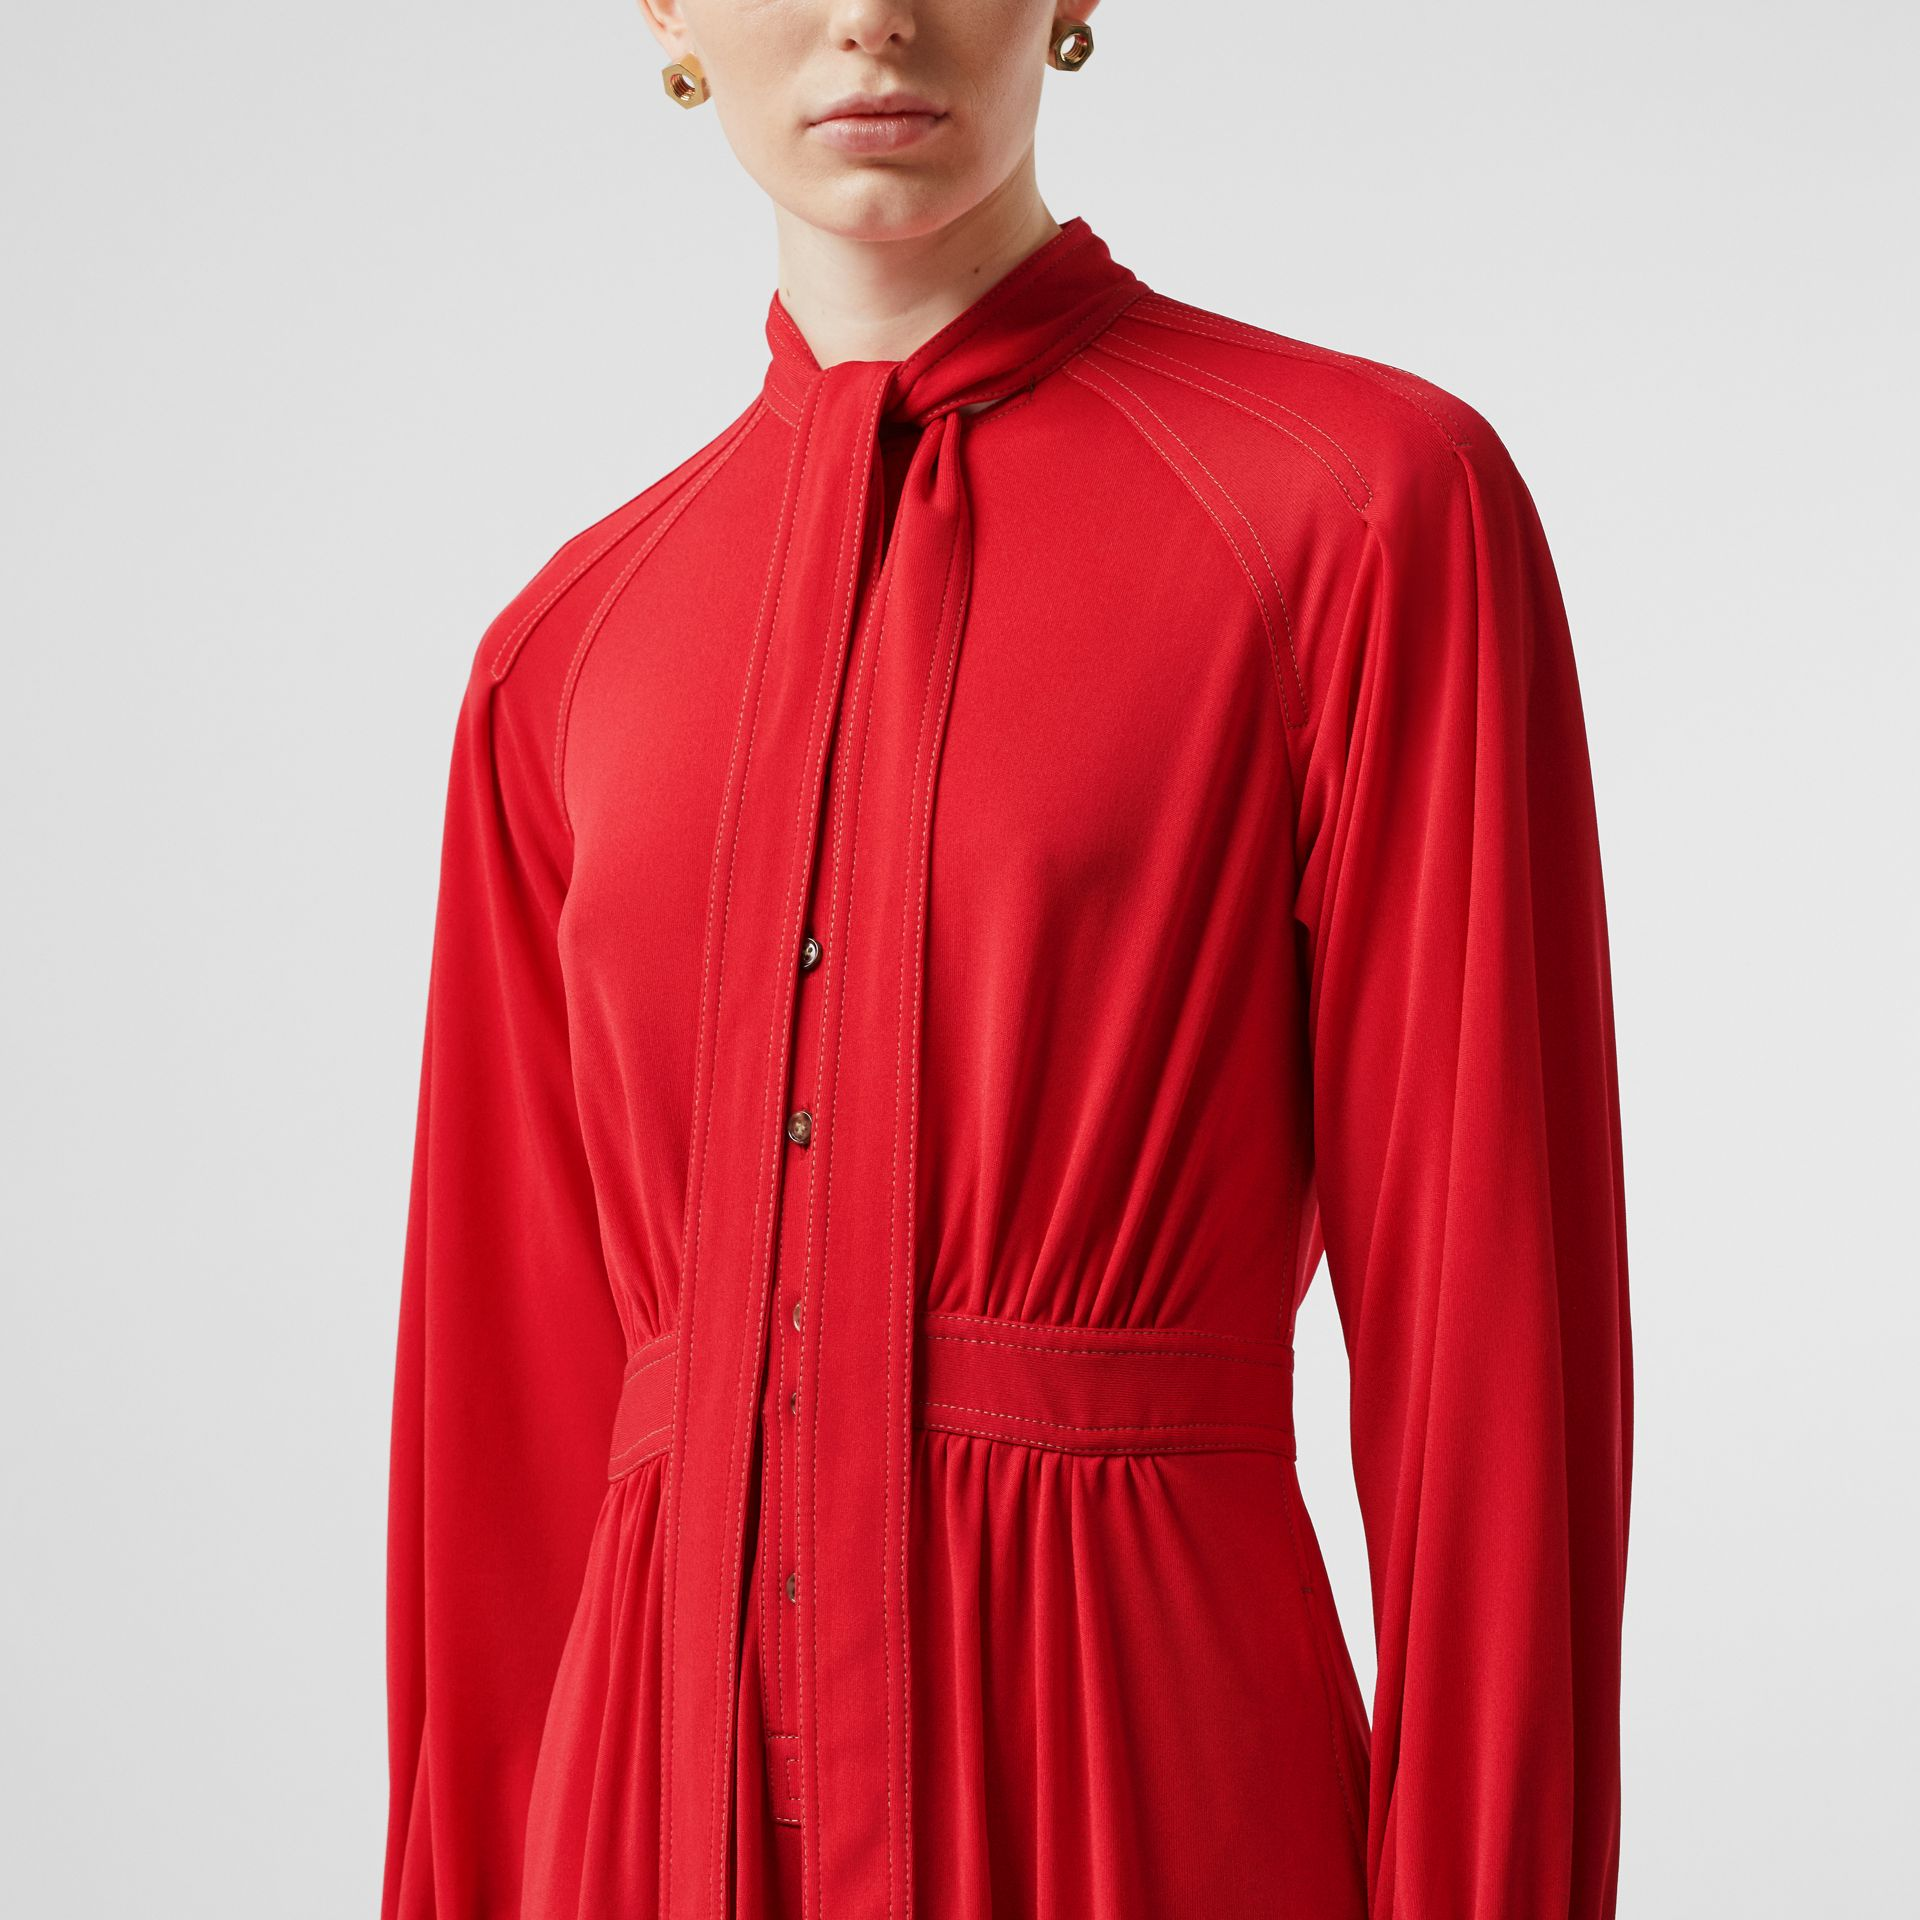 Topstitch Detail Jersey Tie-neck Dress in Bright Red - Women | Burberry - gallery image 4